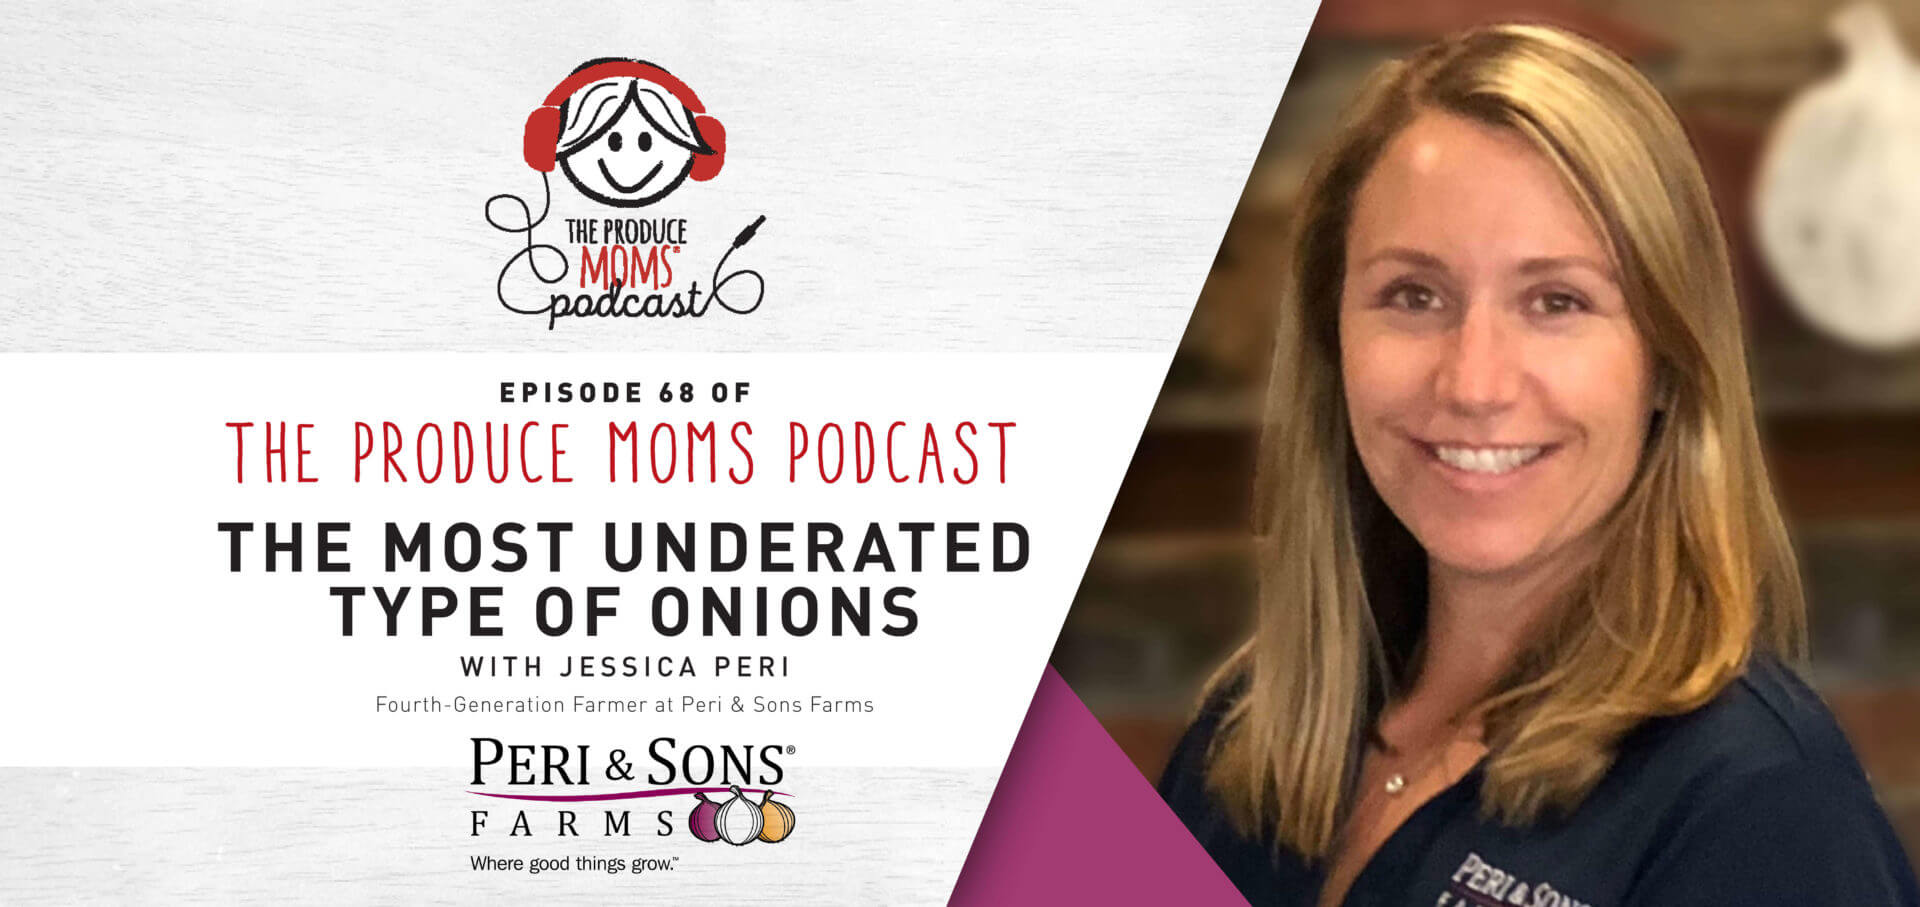 Episode 68: The Most Underrated Type of Onions with Jessica Peri